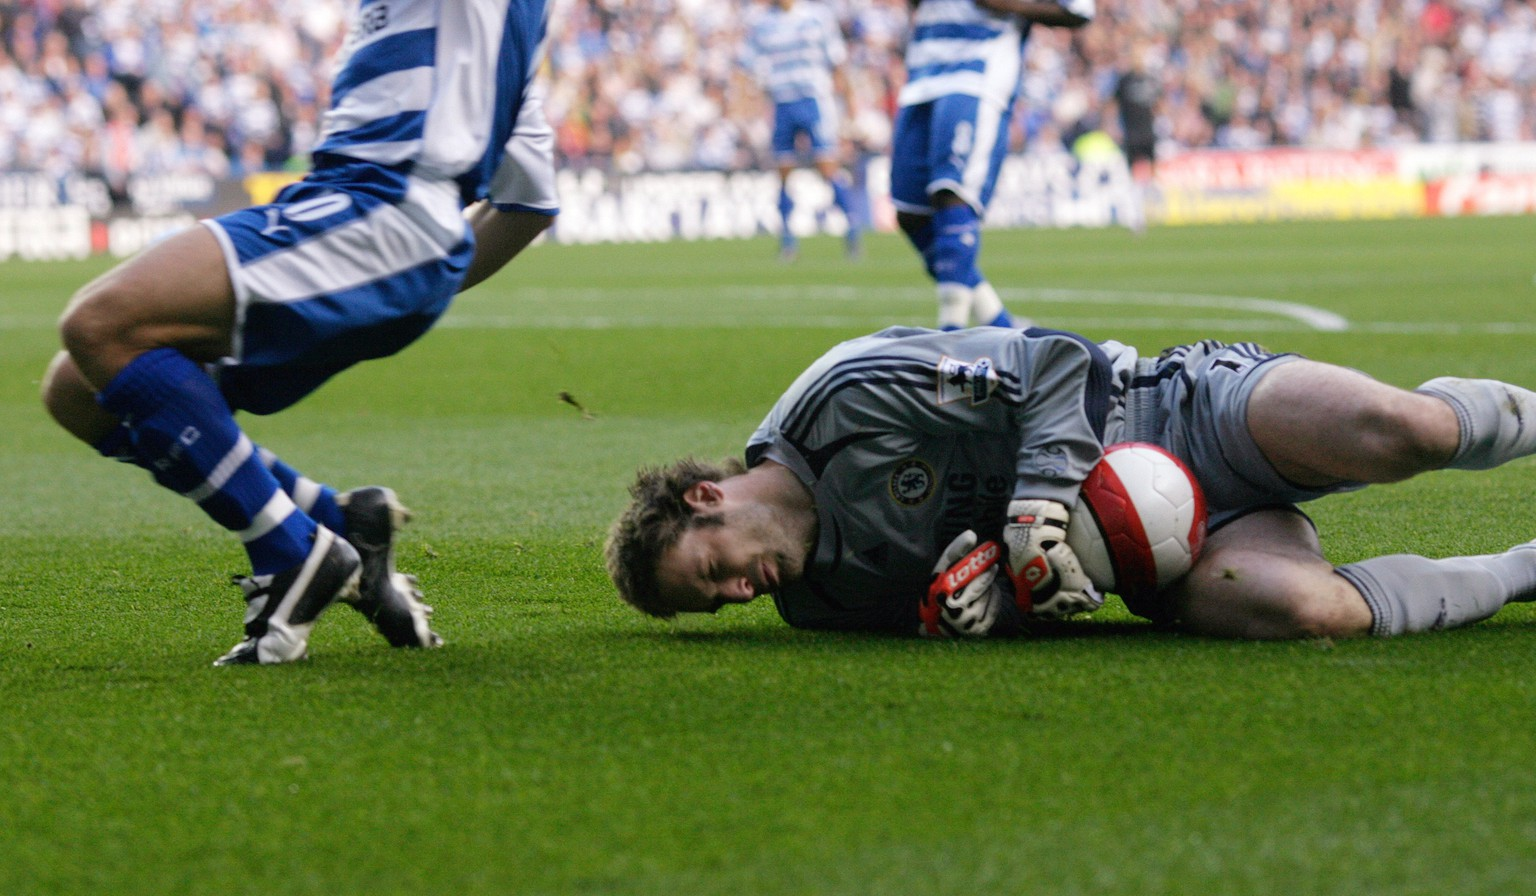 Chelsea's goalkeeper Petr Cech lies on the ground after a challenge by Reading's Stephen Hunt (L) in their English Premier League soccer match at the Madejski Stadium in Reading, southern England, October 14, 2006. NO ONLINE/INTERNET USE WITHOUT A LICENCE FROM THE FOOTBALL DATA CO LTD. FOR LICENCE ENQUIRIES PLEASE TELEPHONE +44 207 298 1656.          REUTERS/Kieran Doherty   (BRITAIN) - RTR1IBLU